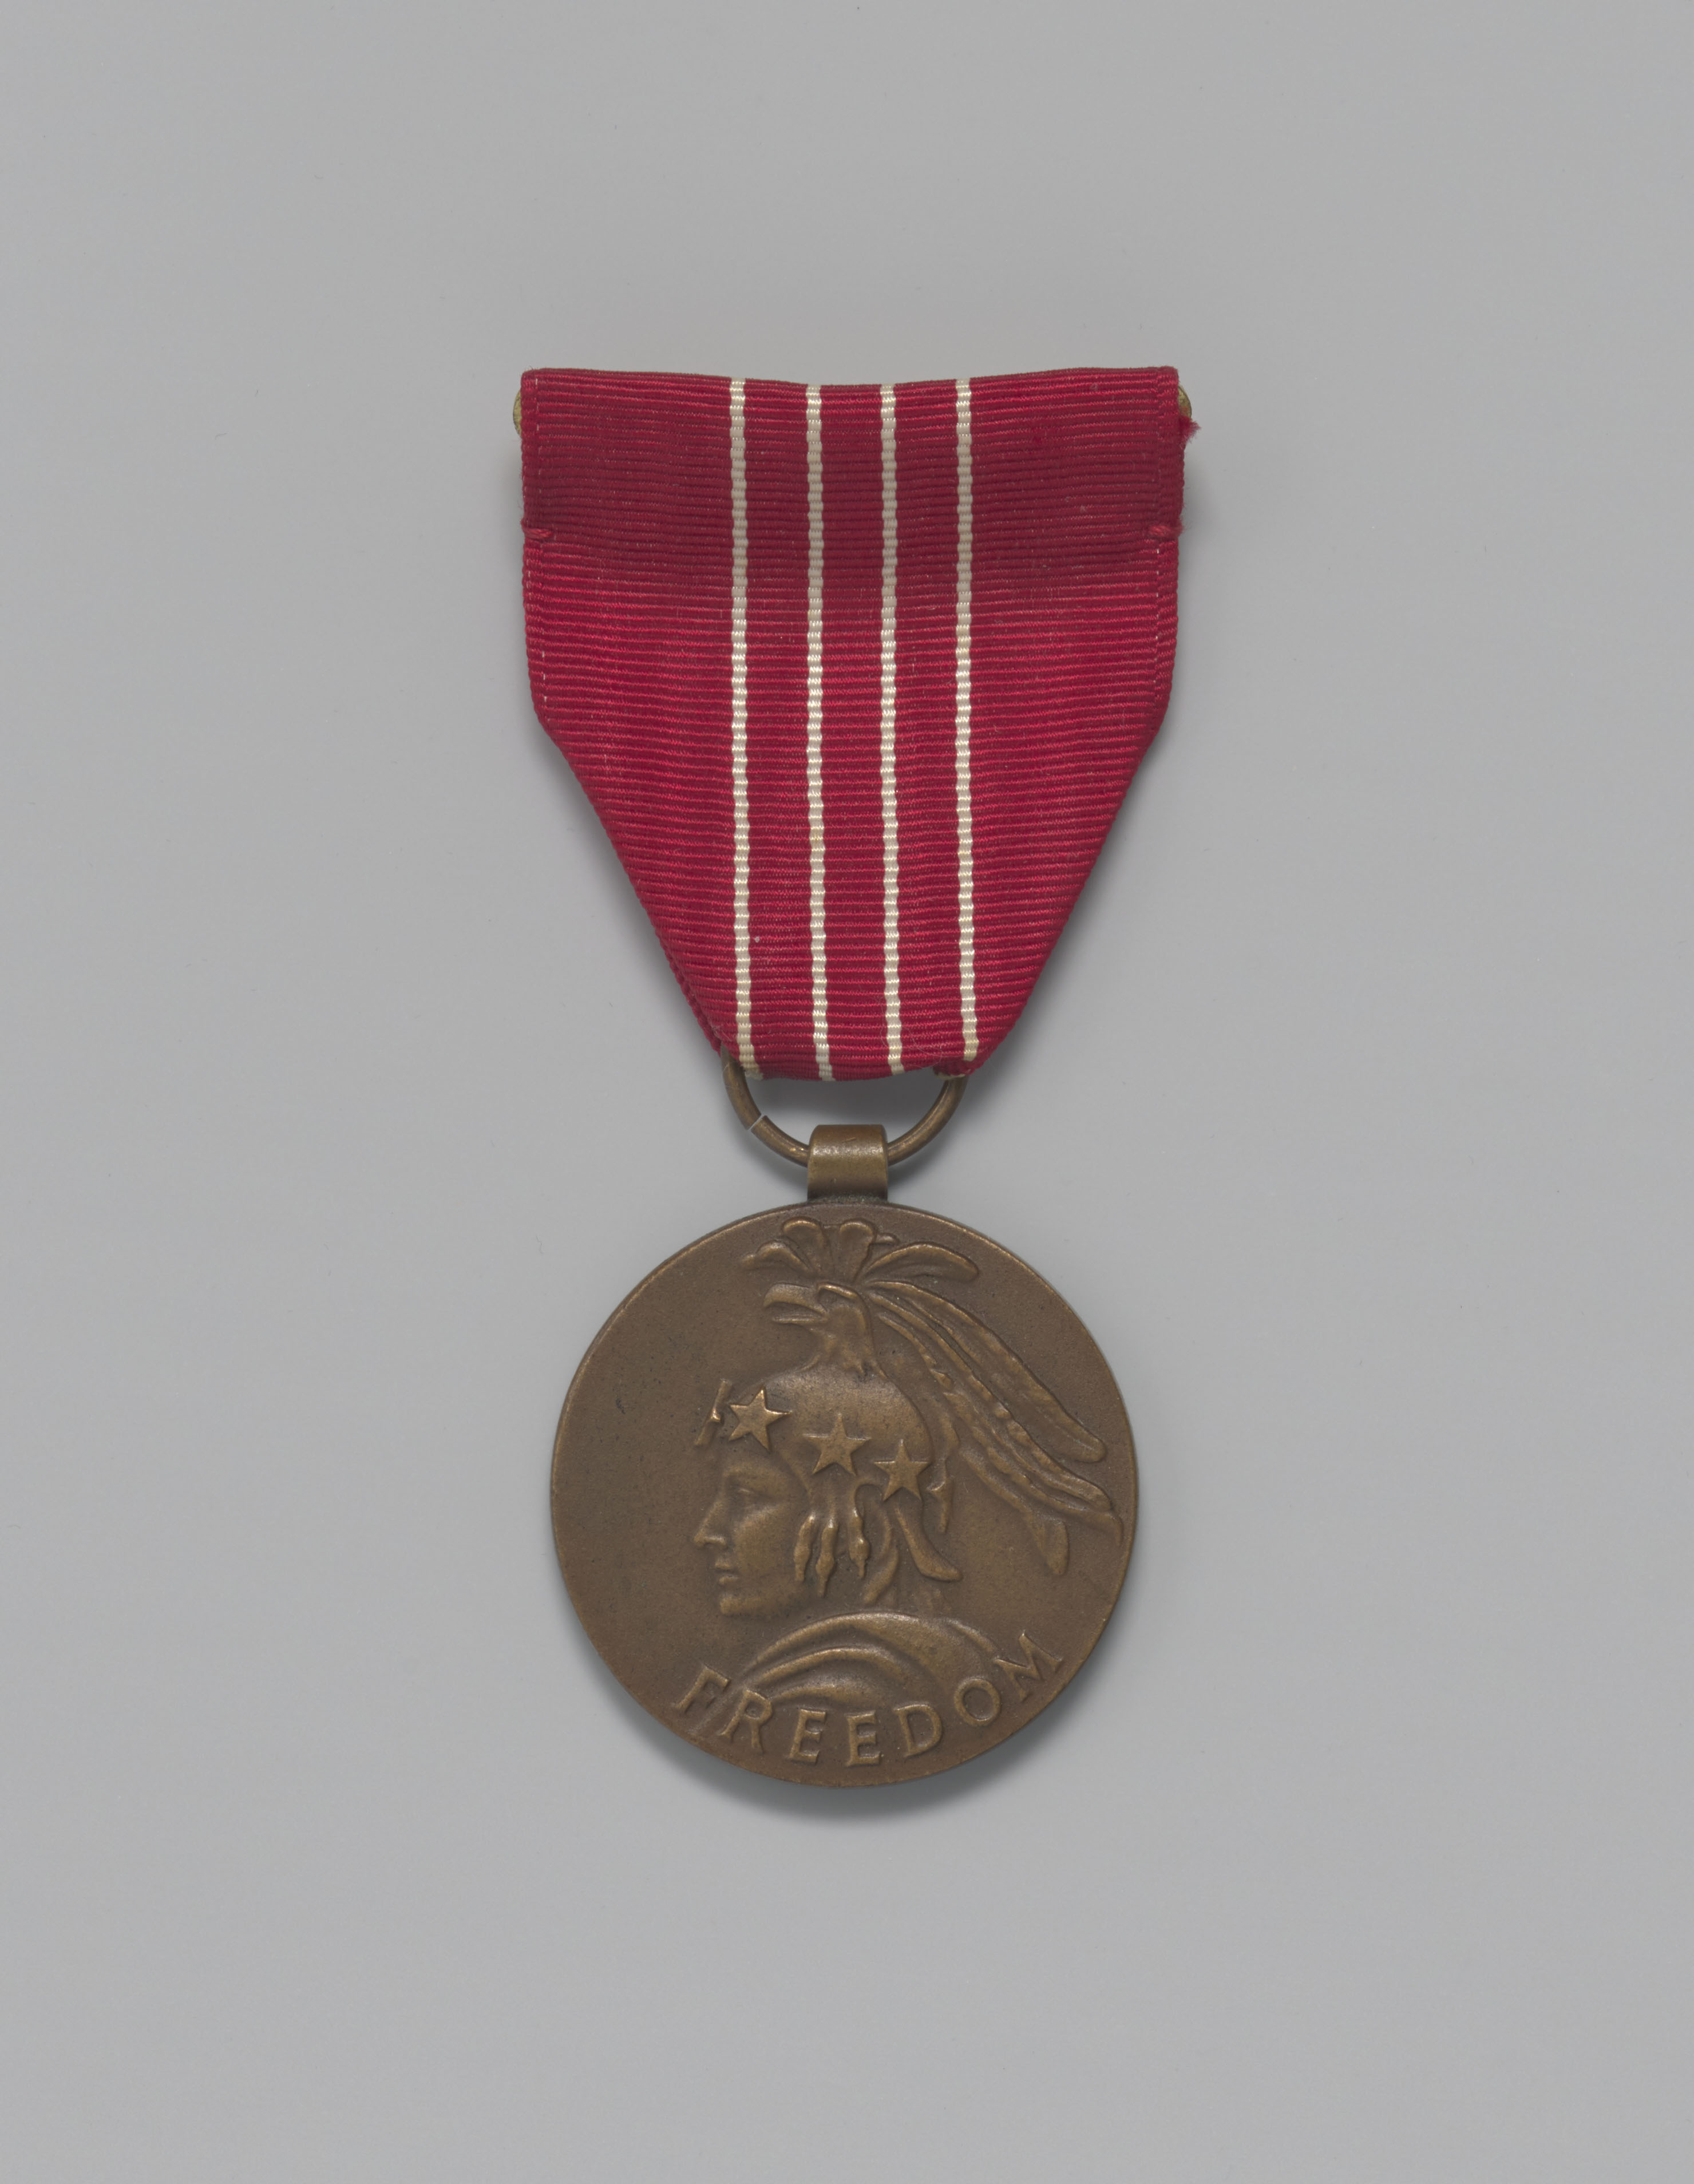 a bronze medal on a gray background